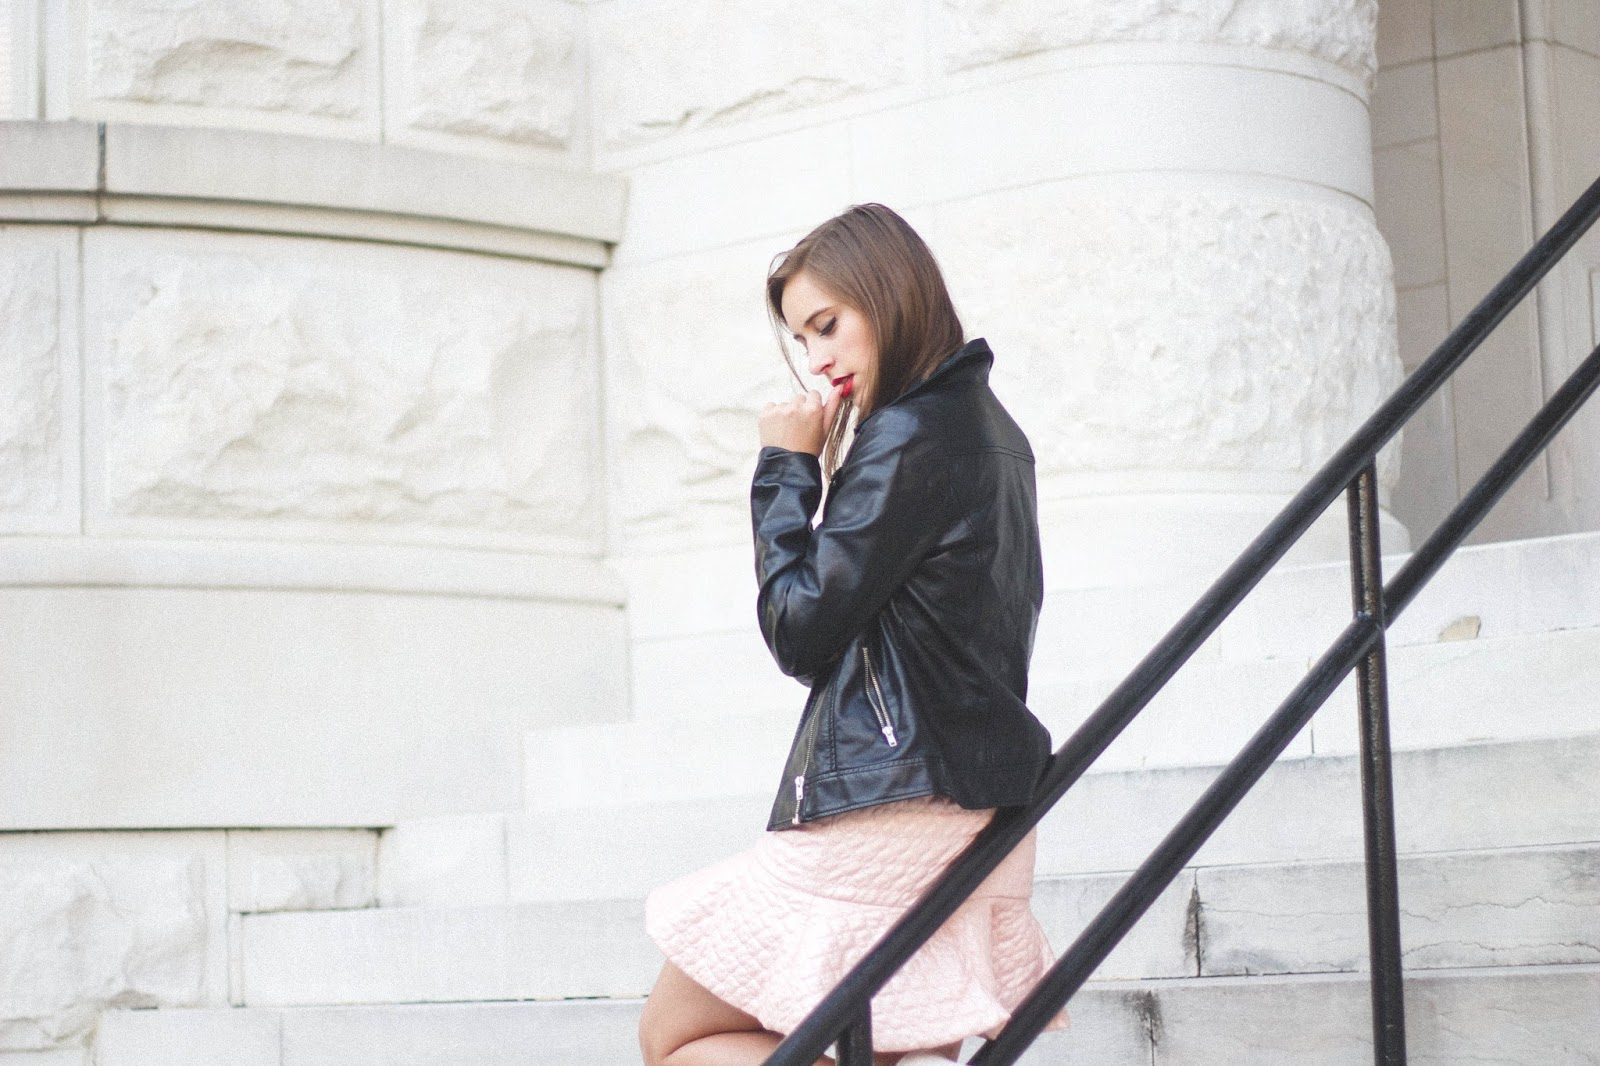 retro, outfit, lashes of london, asos, pink, classy, style, pink leather co-ord, white pumps, forever 21 biker jacket, good girl bad girl outfit, ariana grande style, vintage outfit inspiration,